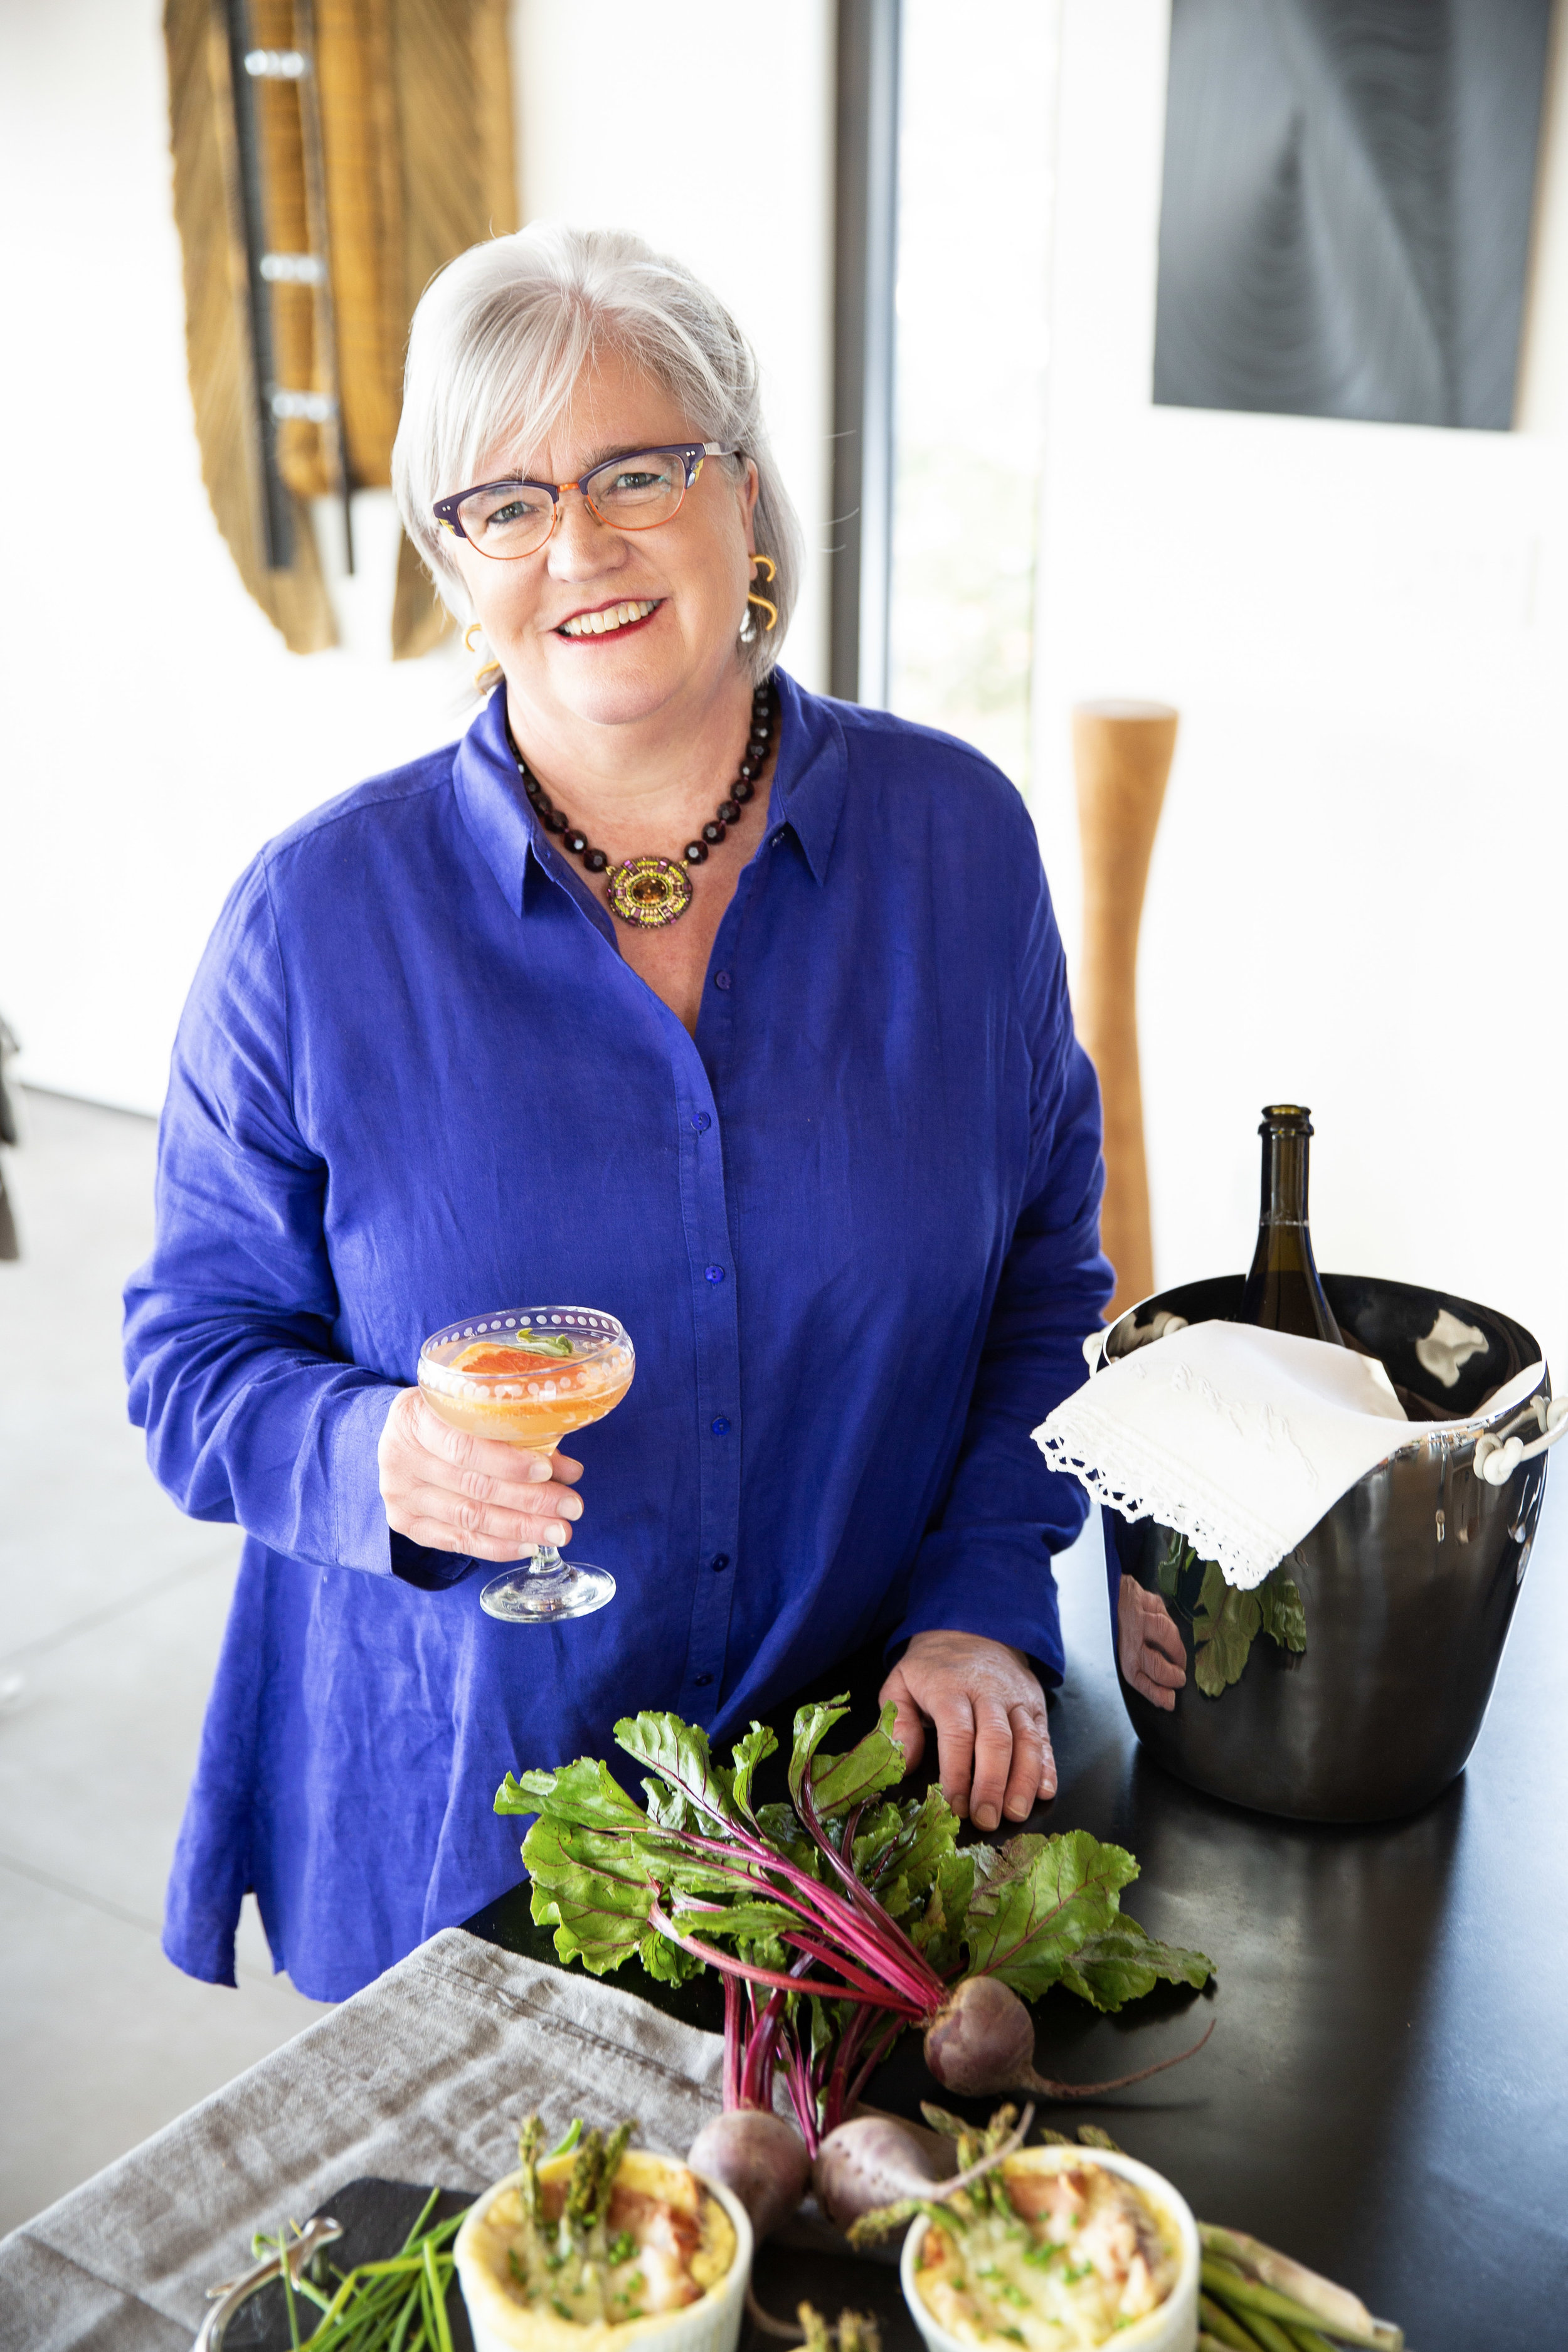 Our lovely Katherine Forelle who is our house chef/baker and veteran hostess hailing from Connecticut.......now she knows how to throw a dinner party!